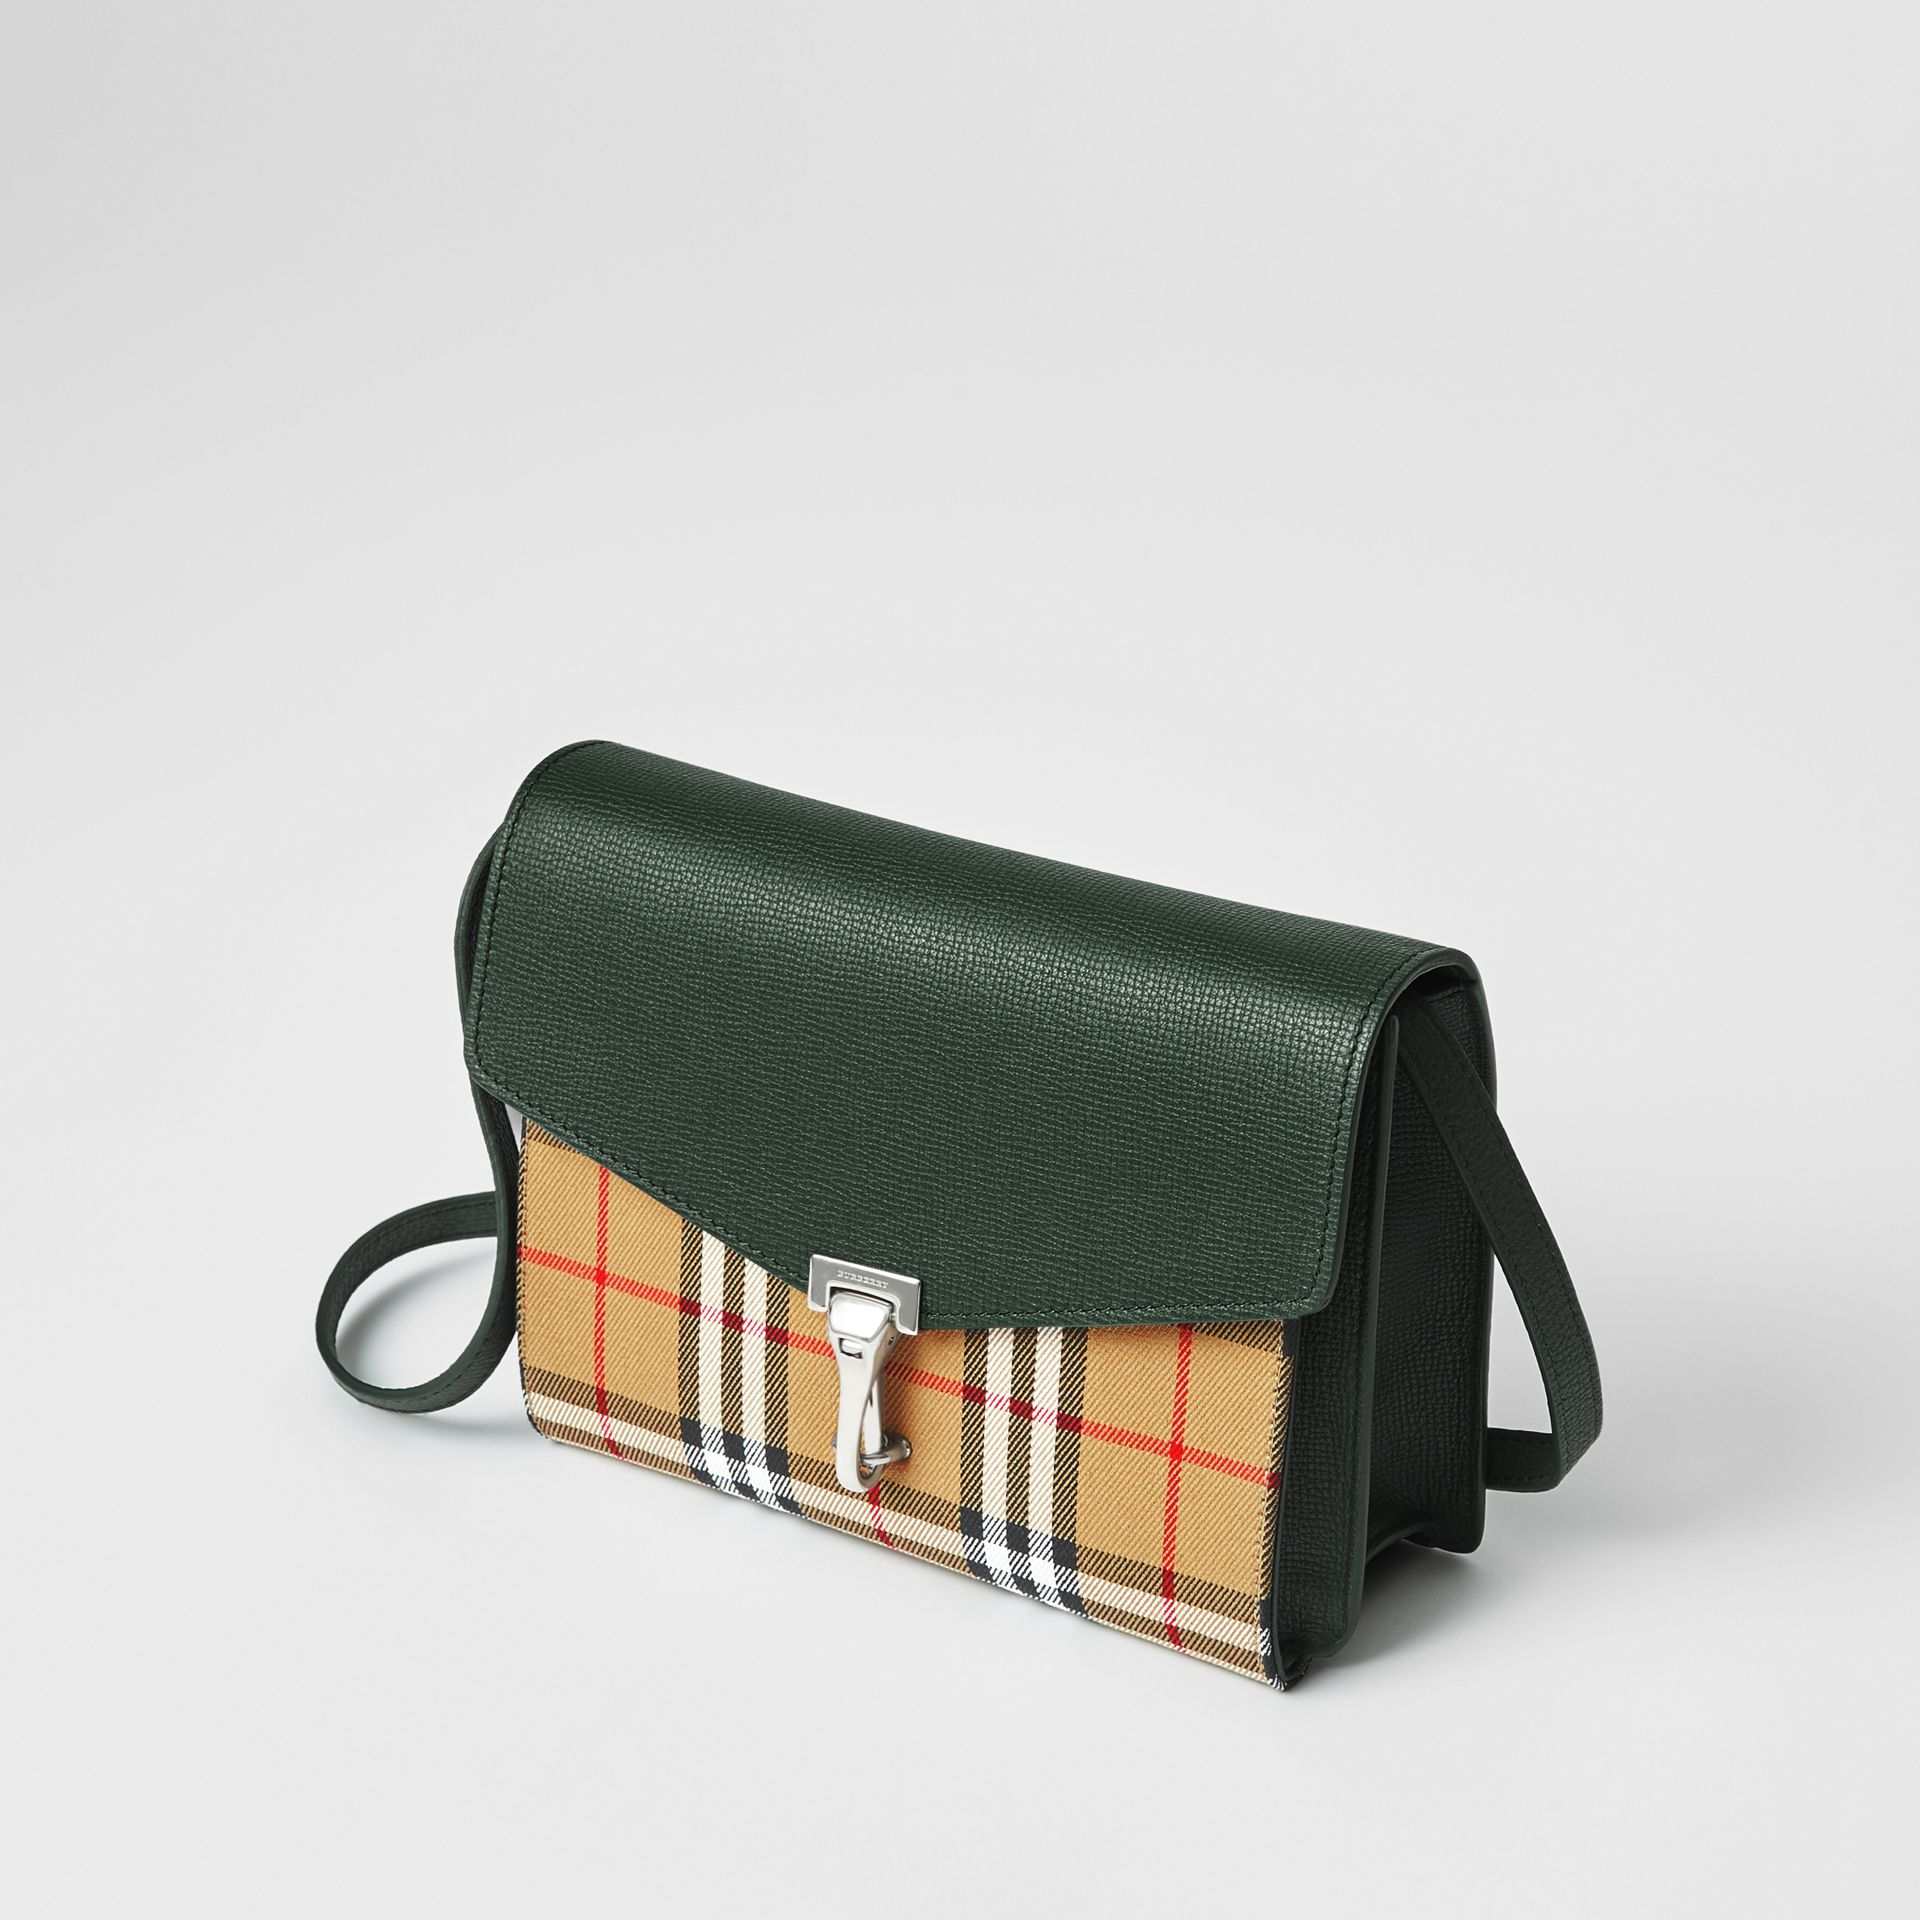 Small Vintage Check and Leather Crossbody Bag in Green - Women | Burberry United States - gallery image 4